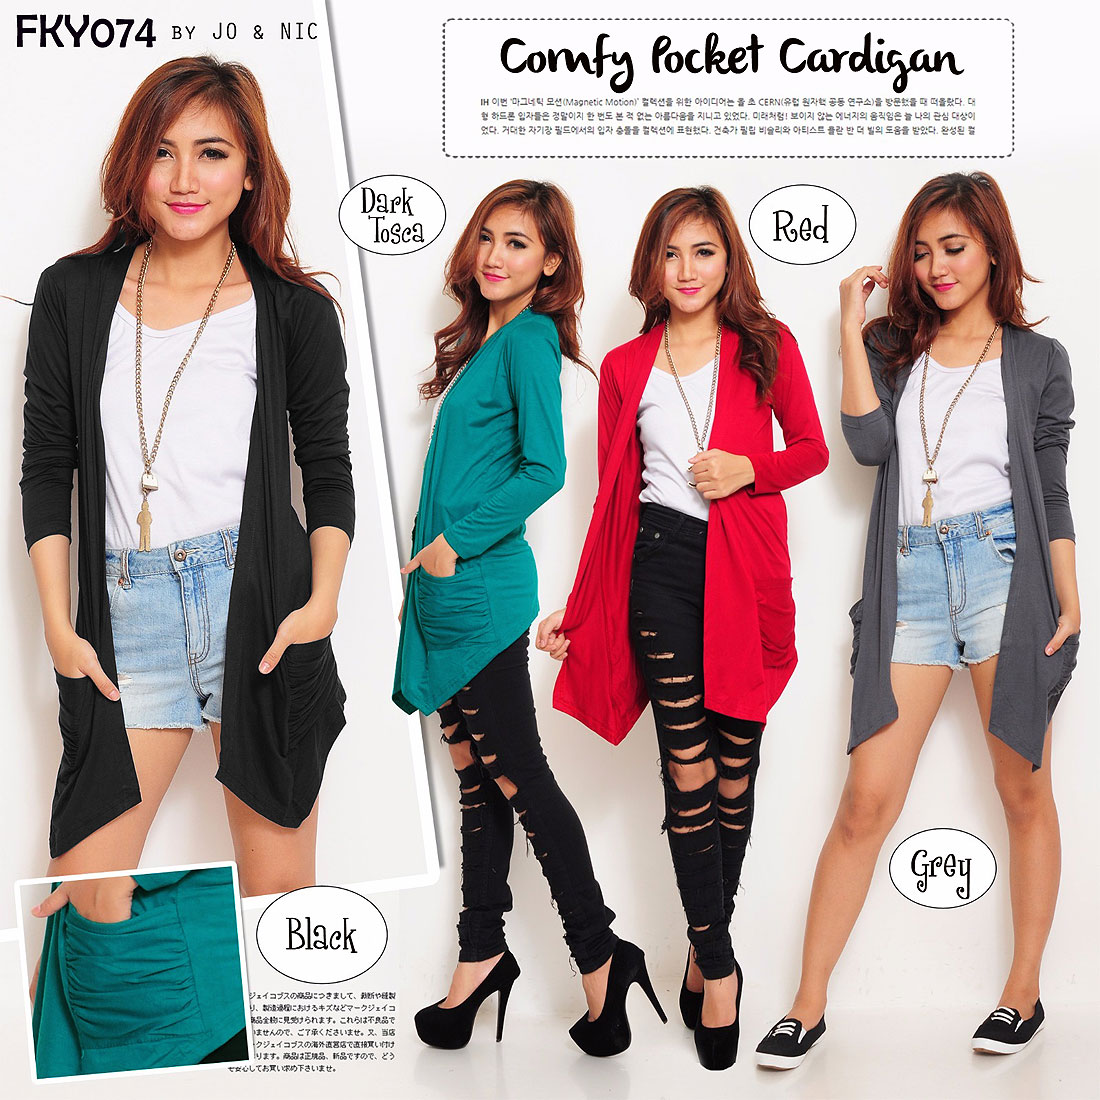 FKY074 Comfy Pocket Cardigan bhn kaos rayon spandex HQ allsize fit to L